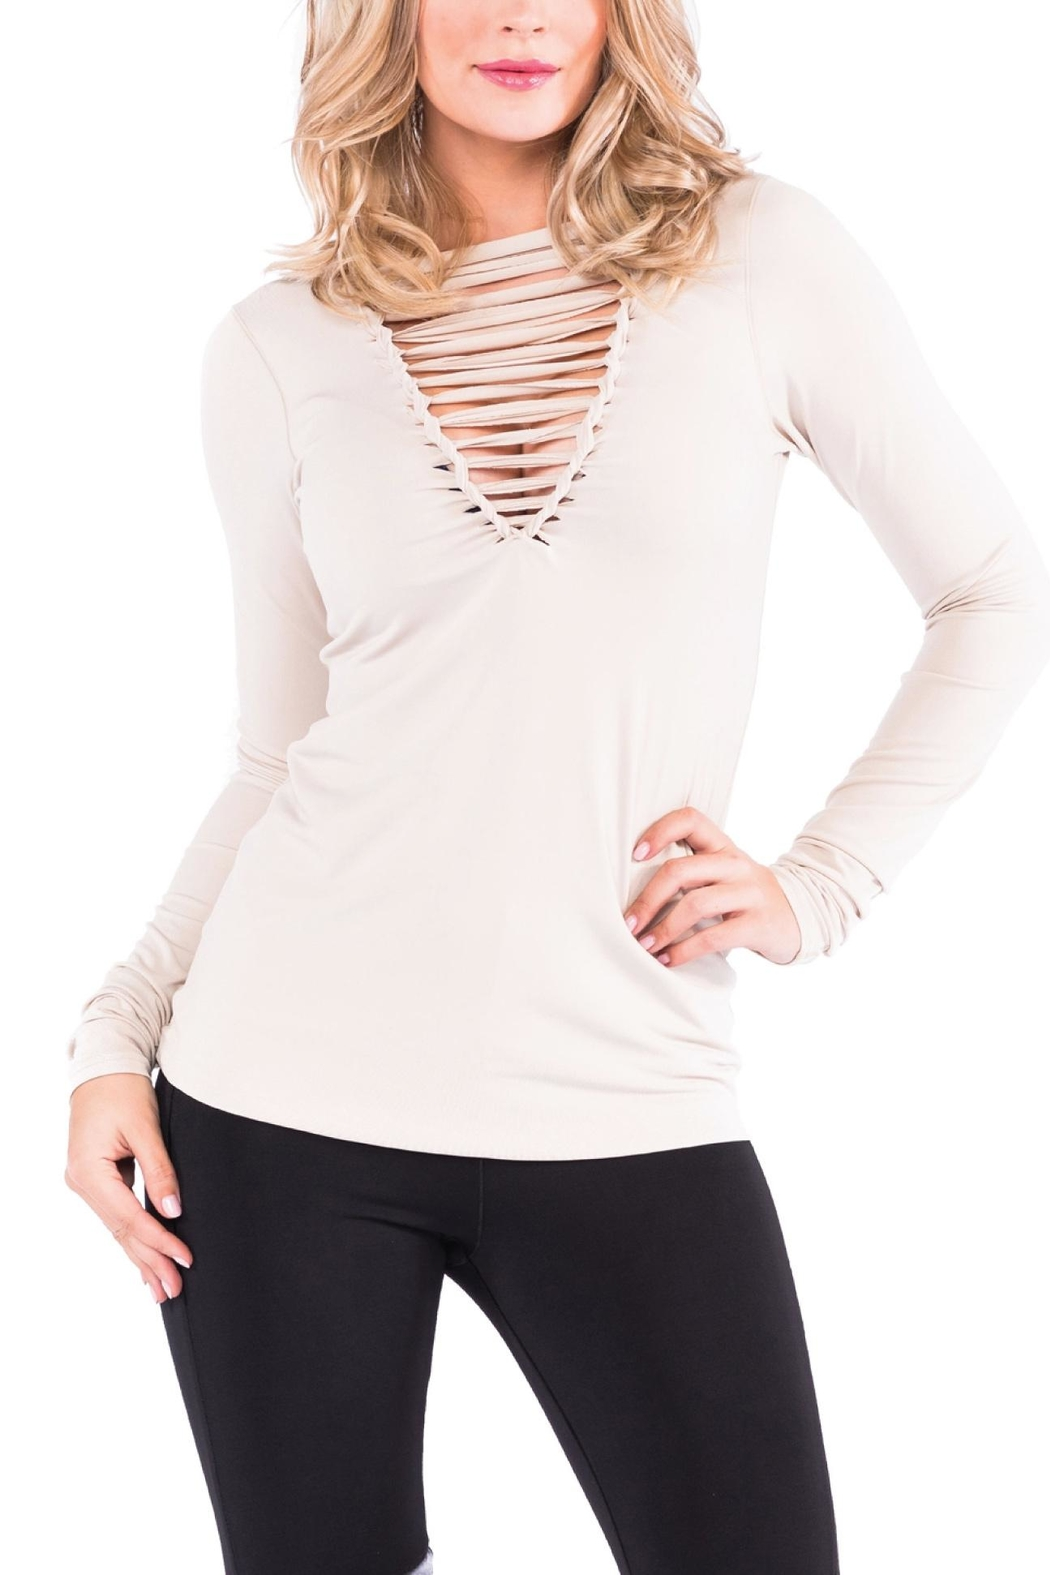 Eva Varro Braided Front Top - Side Cropped Image